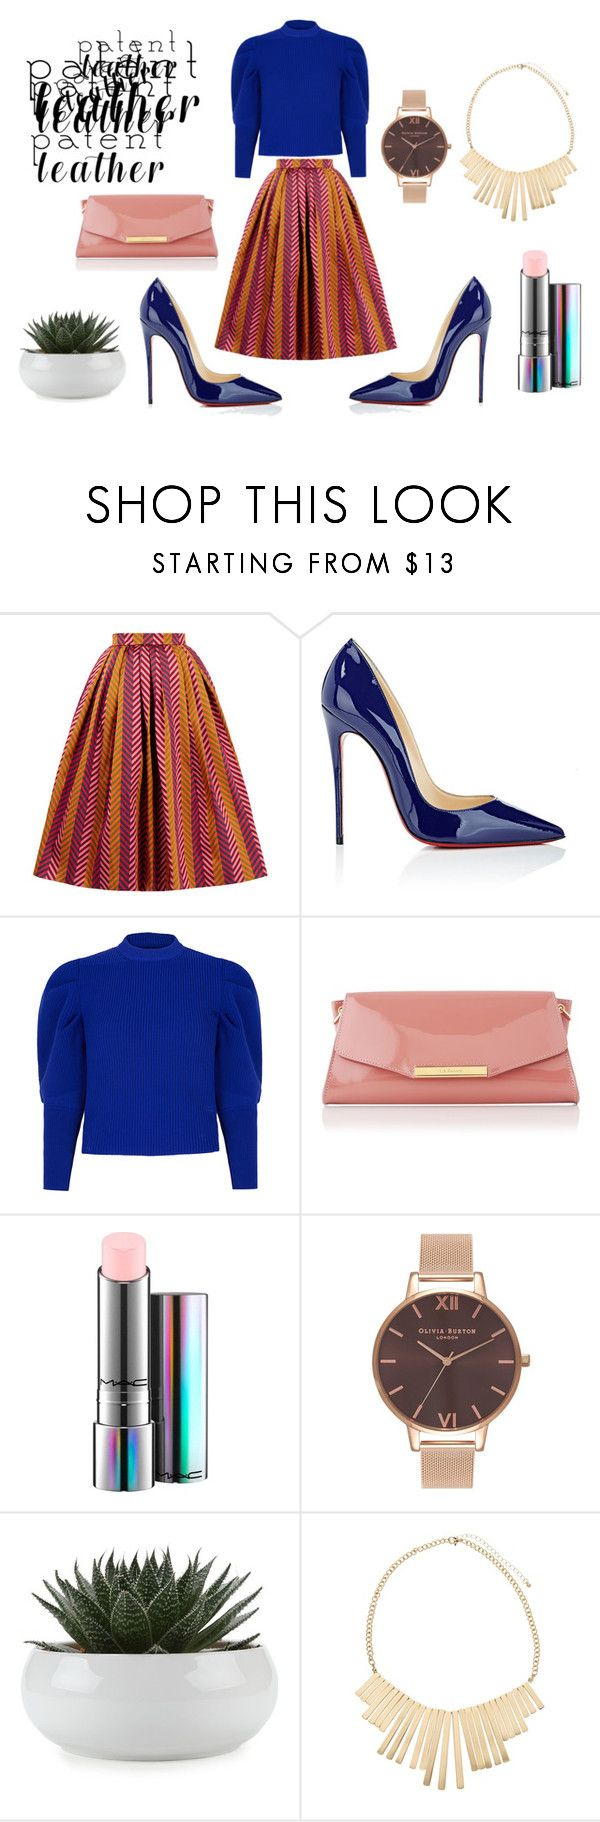 """""""City Slickers: Patent Leather"""" by sue-lozaliniha ❤ liked on Polyvore featuring House of Holland, Christian Louboutin, Paper London, L.K.Bennett, MAC Cosmetics, Olivia Burton and John Lewis"""